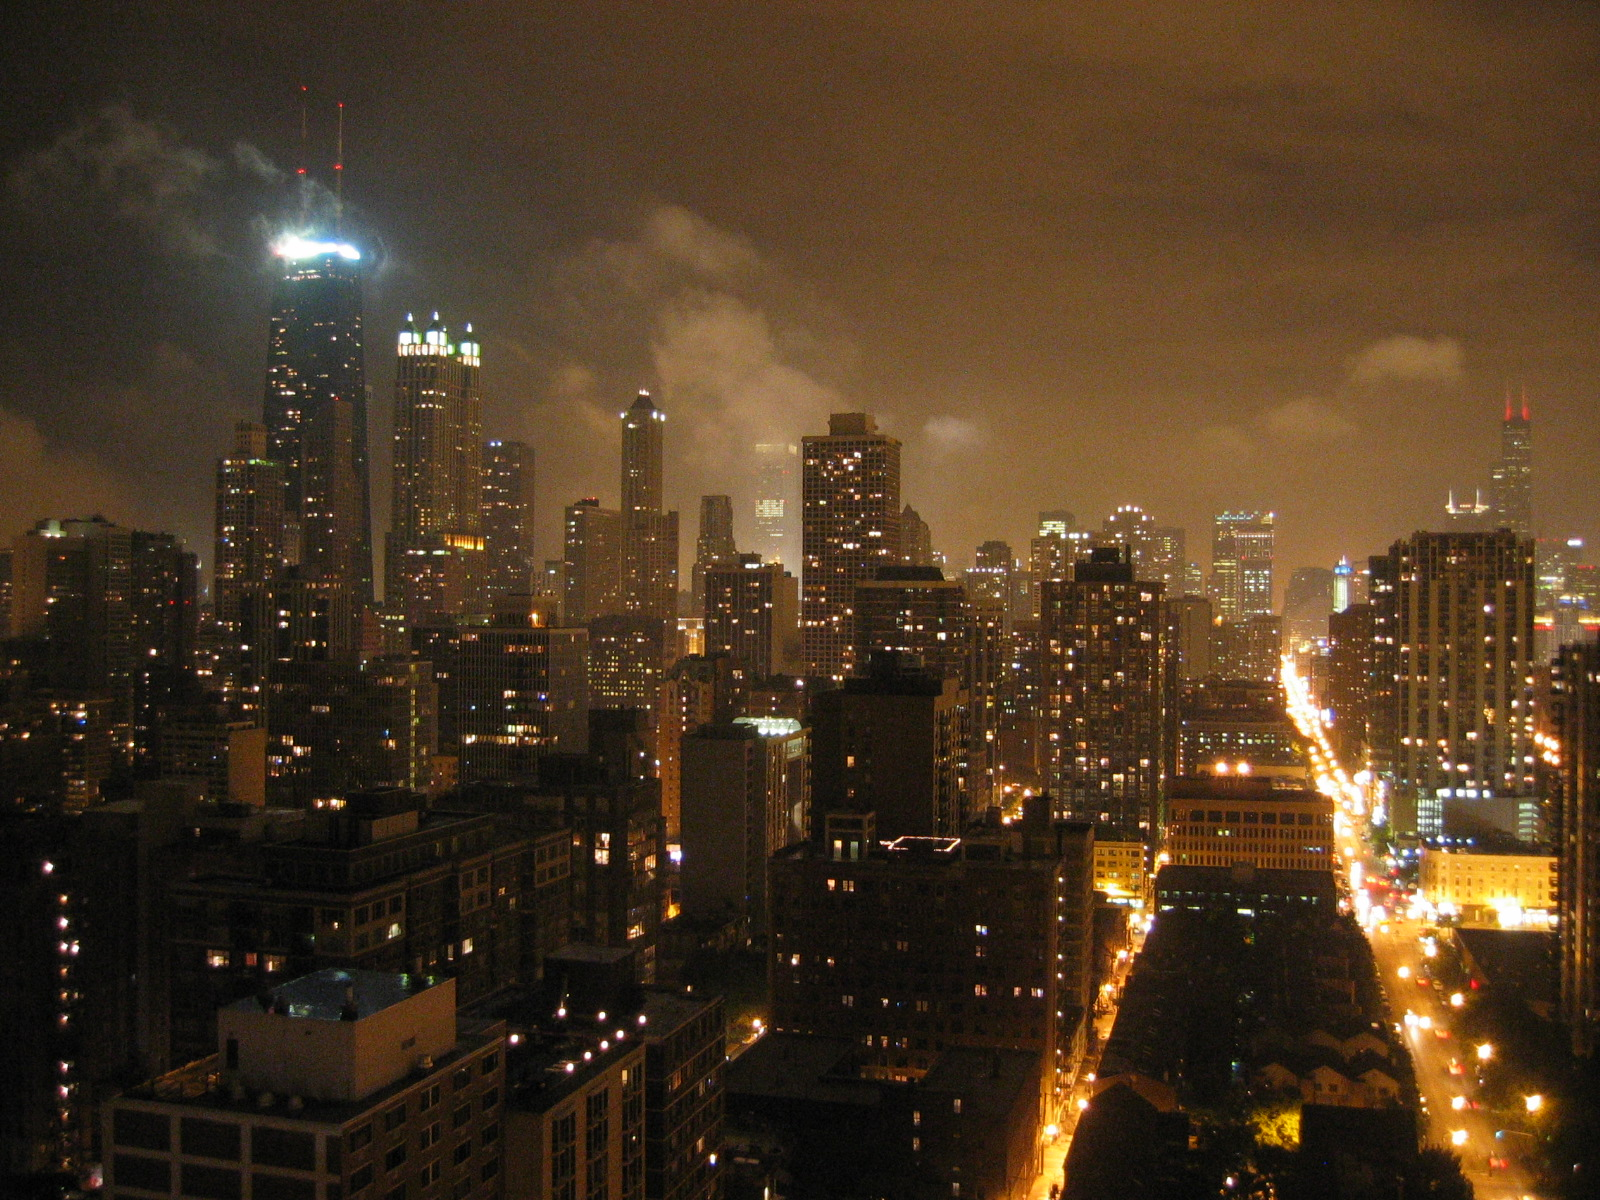 Jrballe_july_2004_chicago_skyline_at_nig